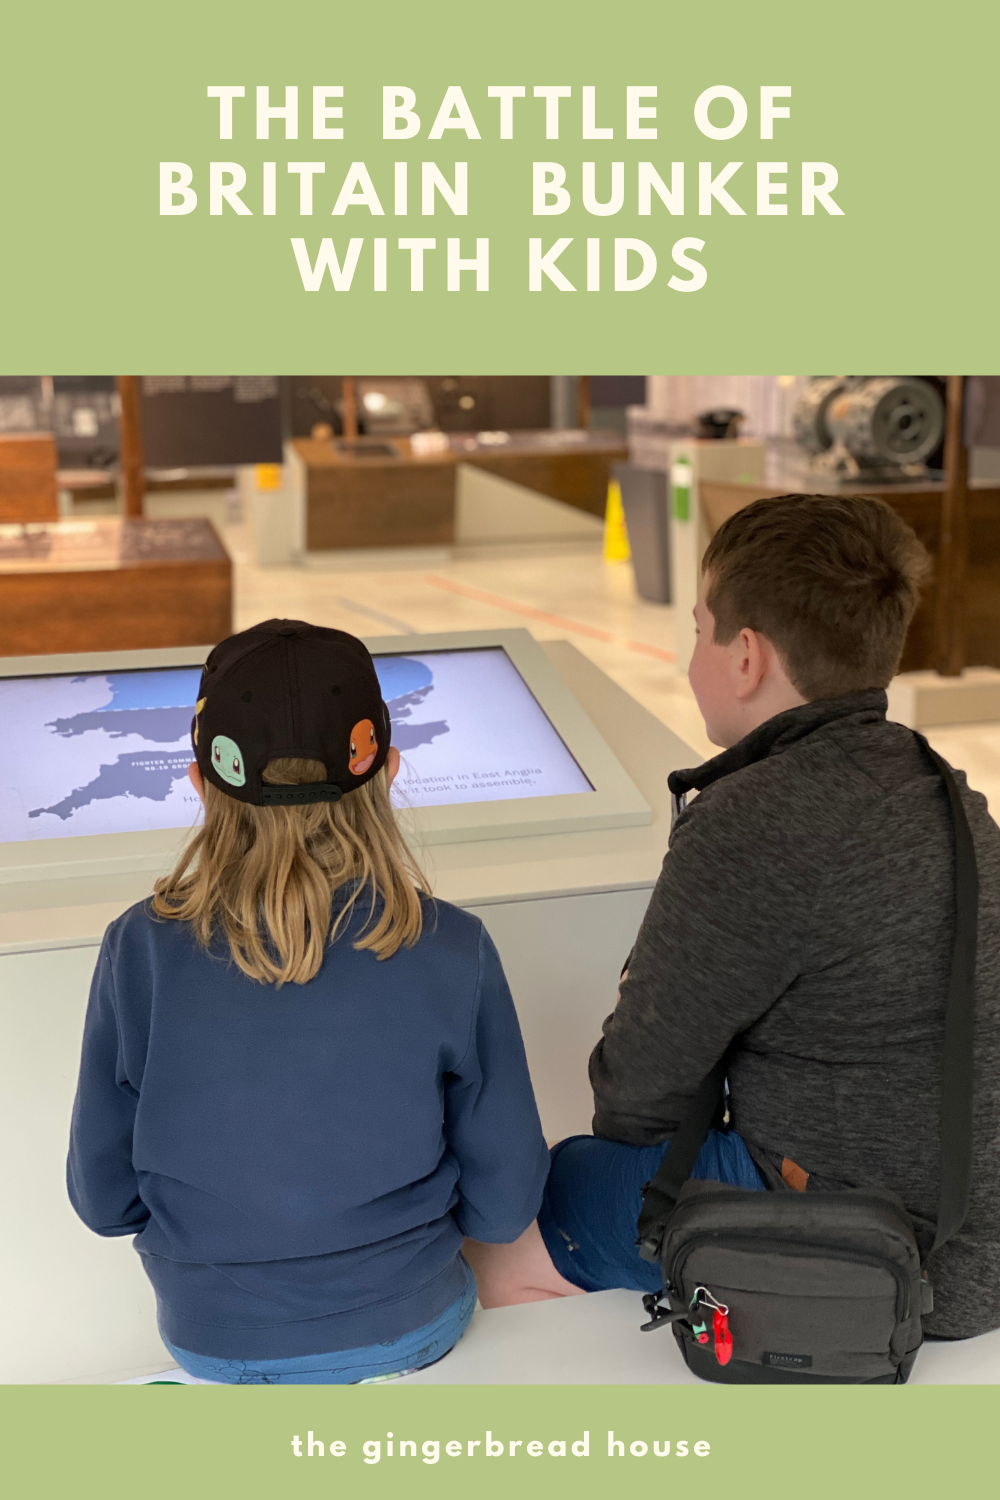 Visiting the Battle of Britain Bunker with kids